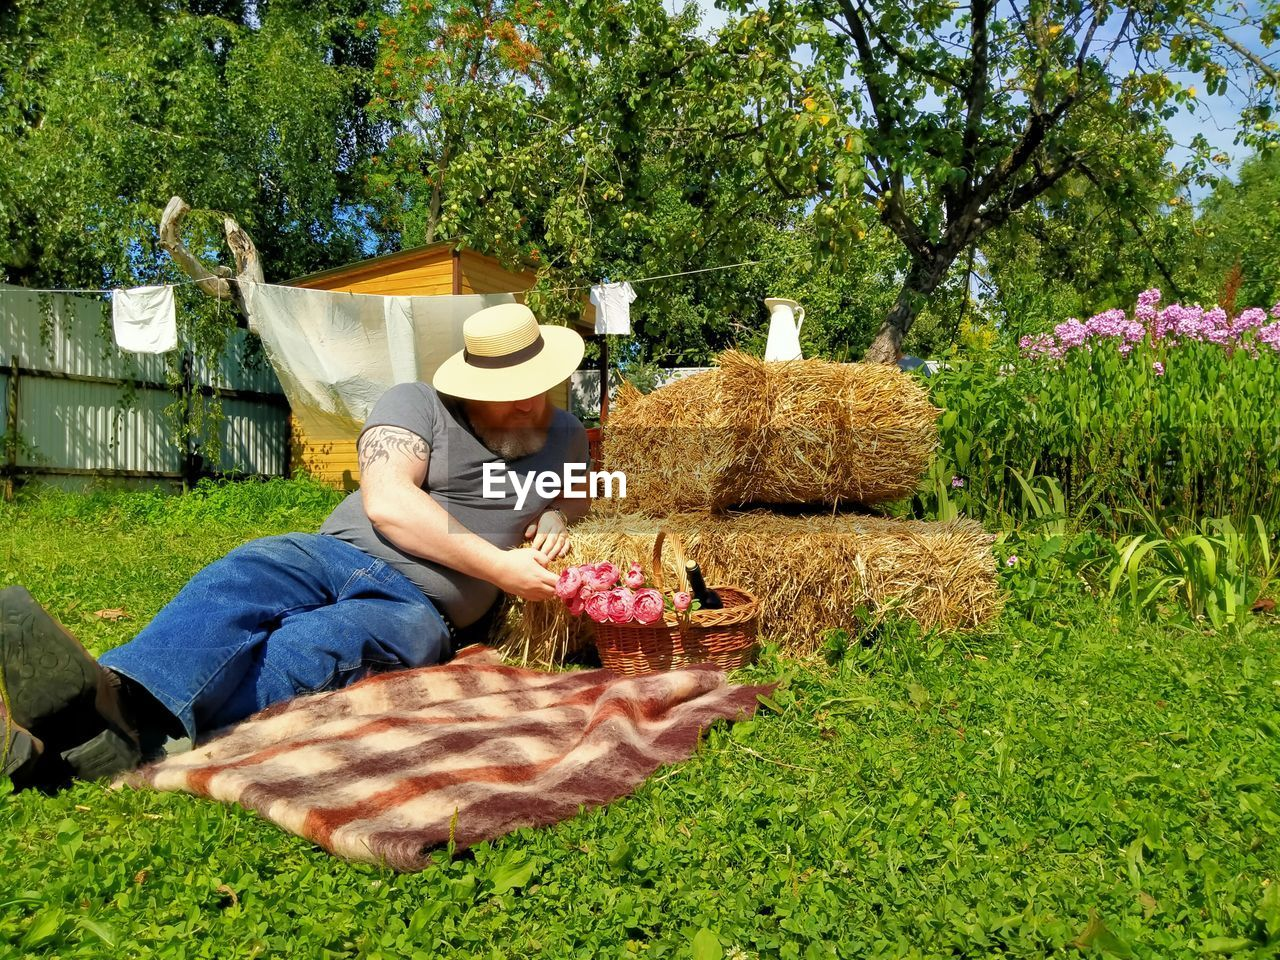 MIDSECTION OF WOMAN SITTING BY POTTED PLANT IN FIELD